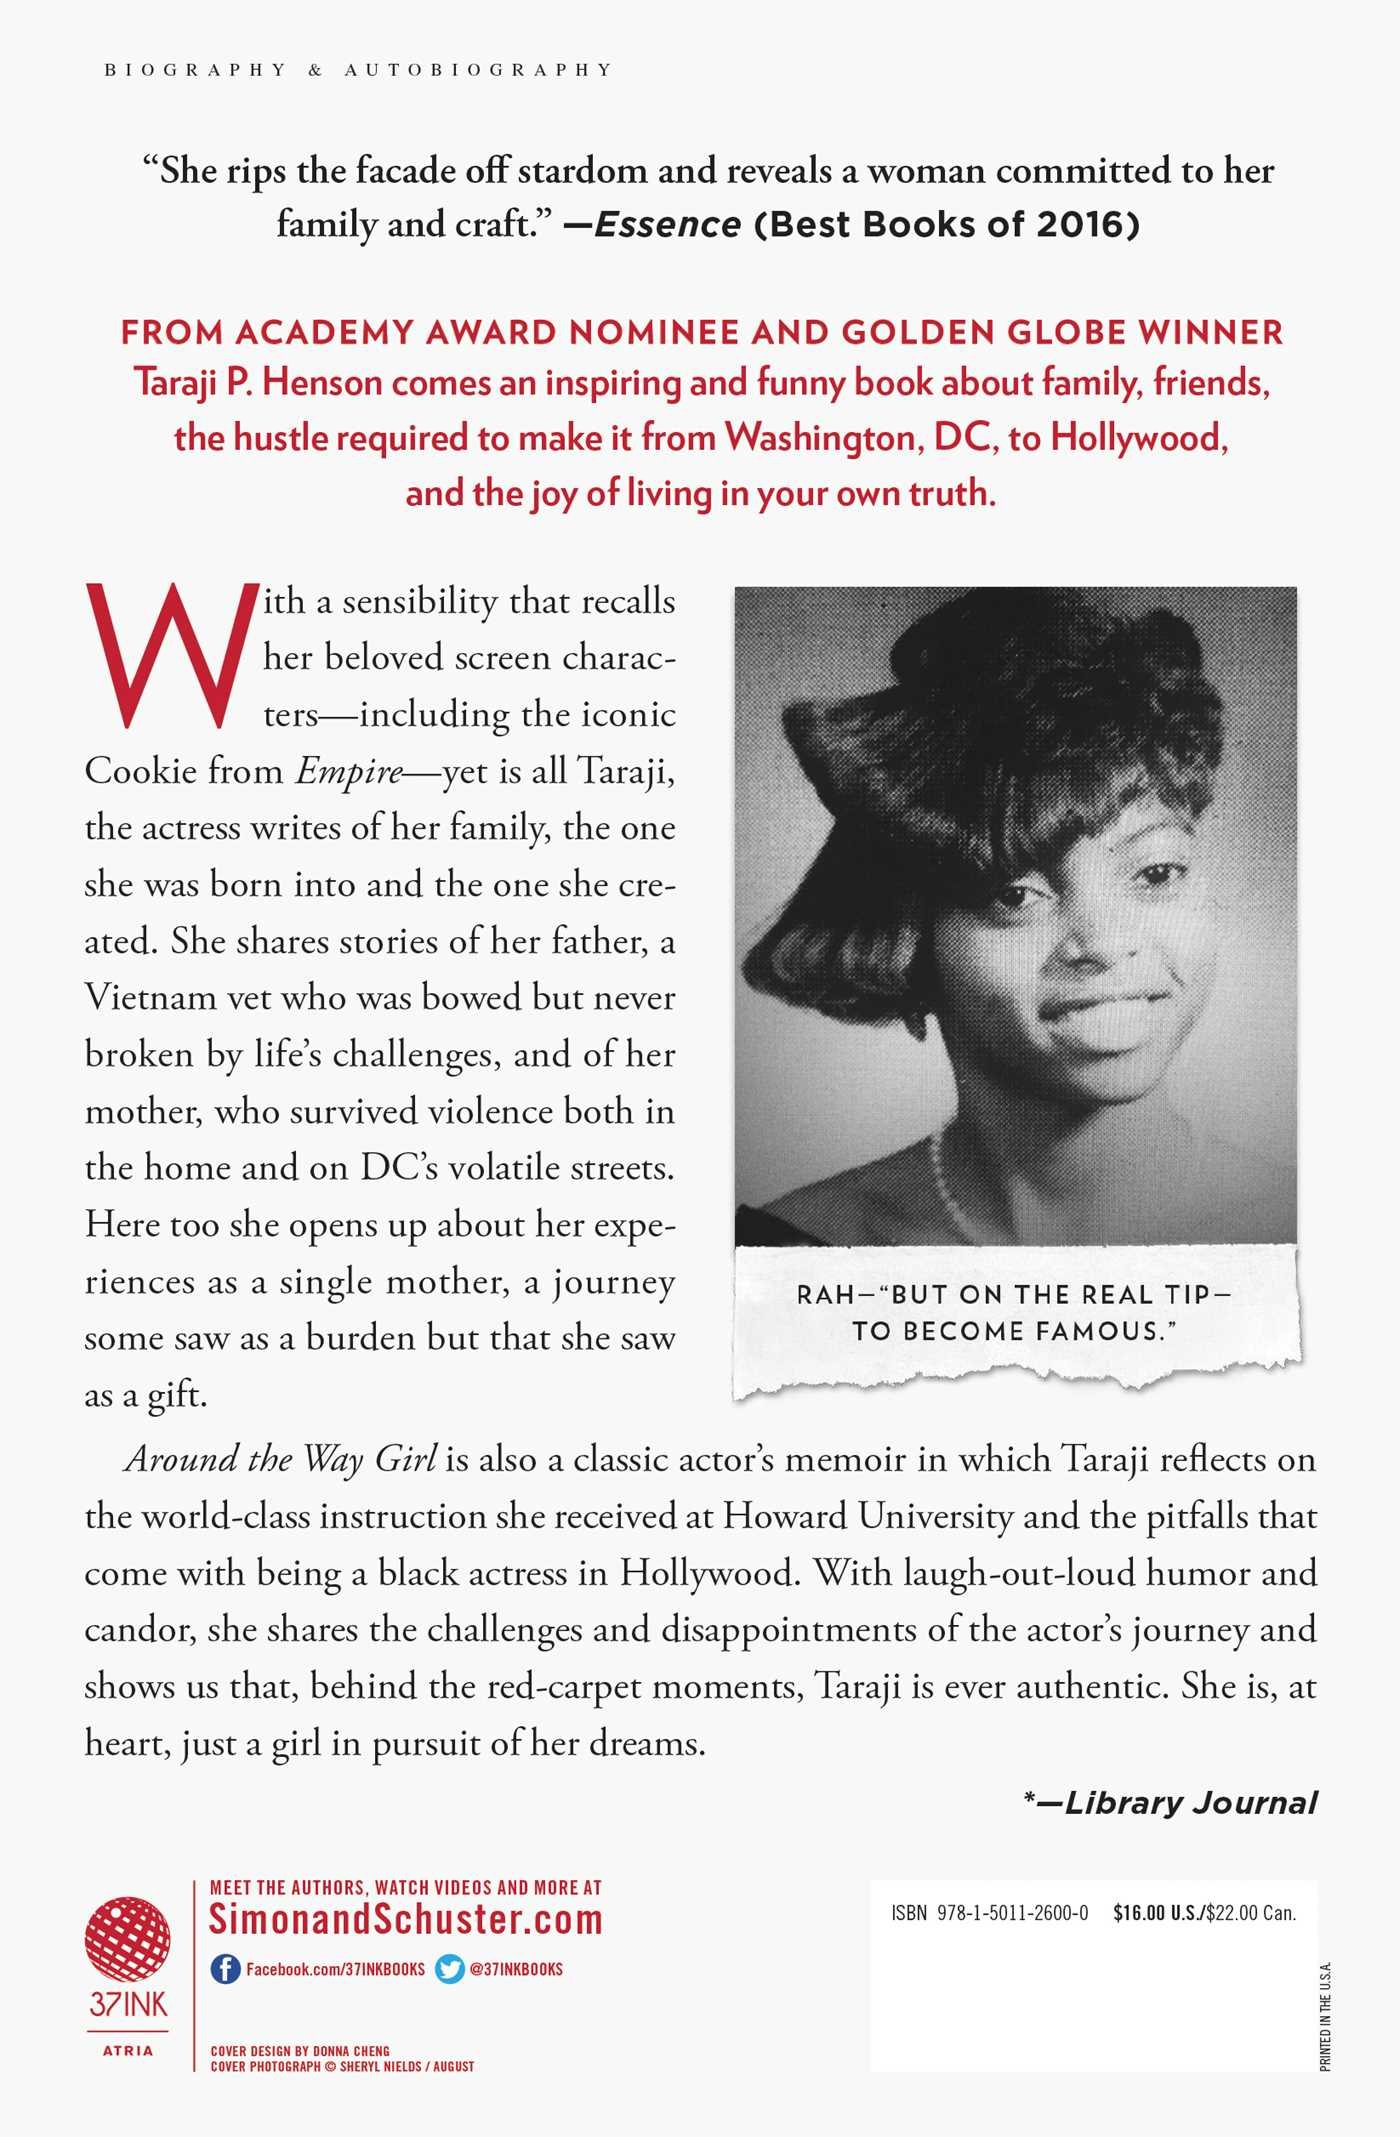 around the way girl taraji p henson free pdf download